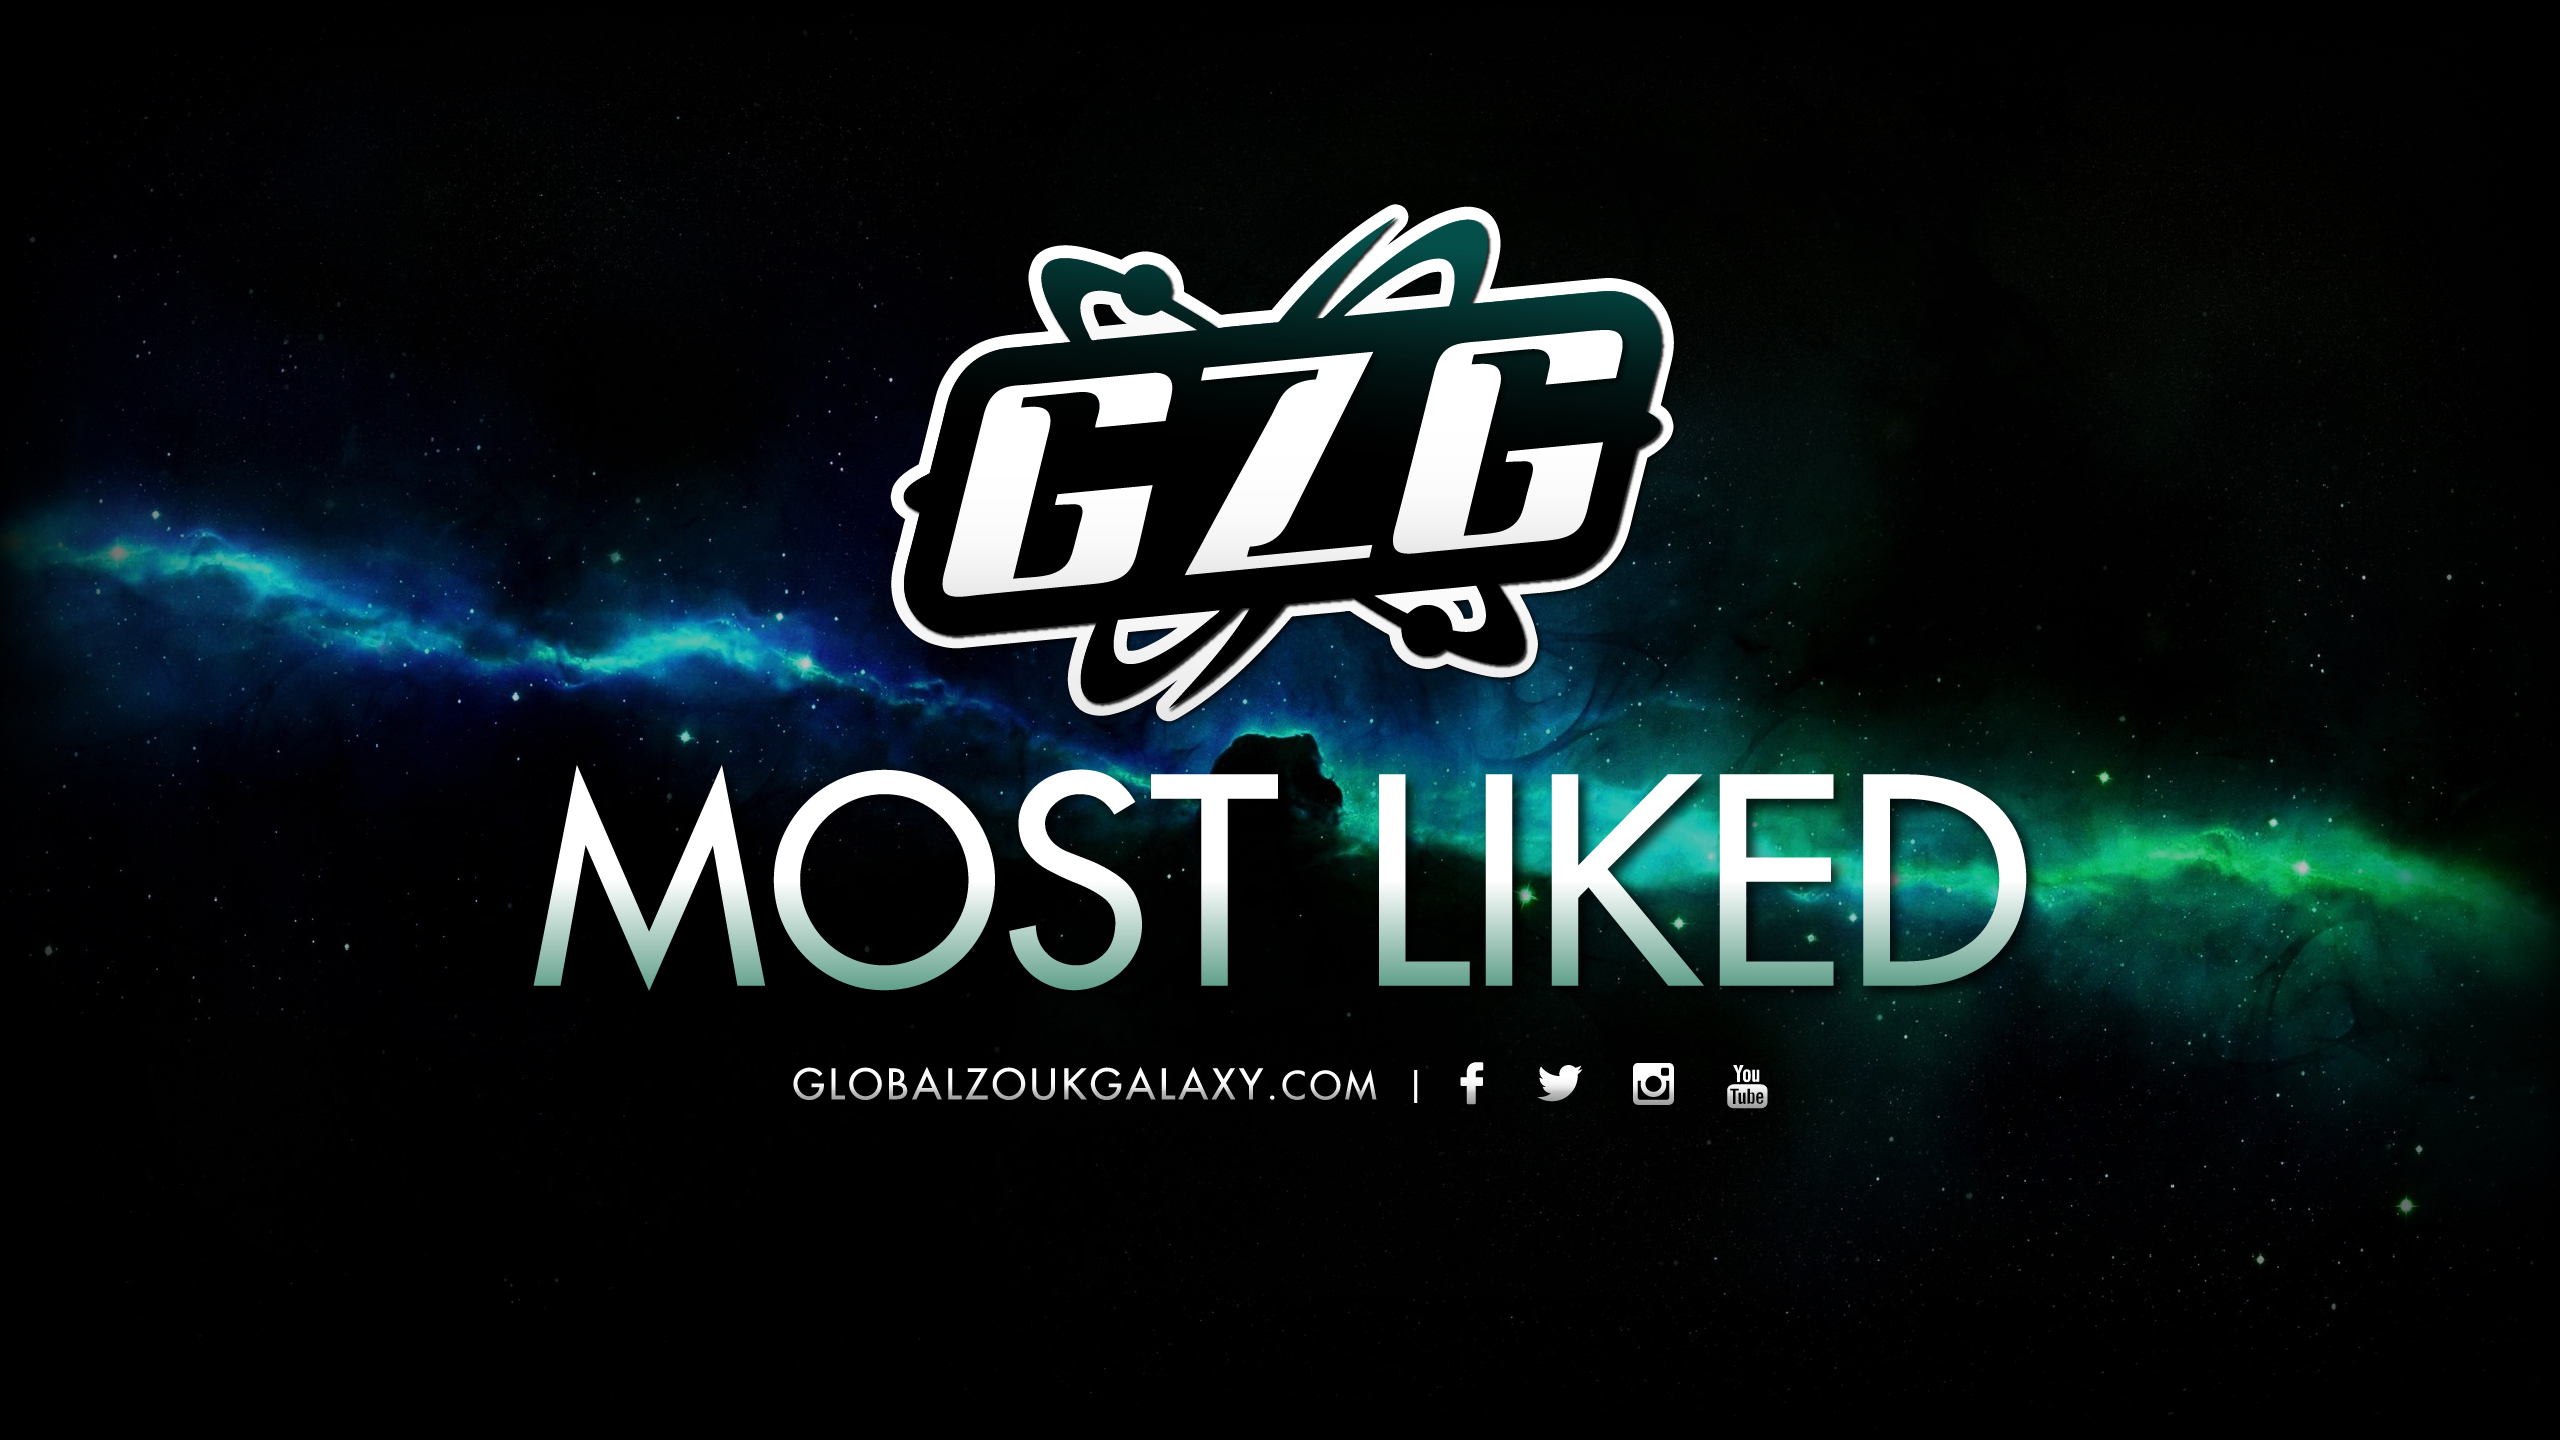 GLOBAL ZOUK GALAXY ® MOST LIKED